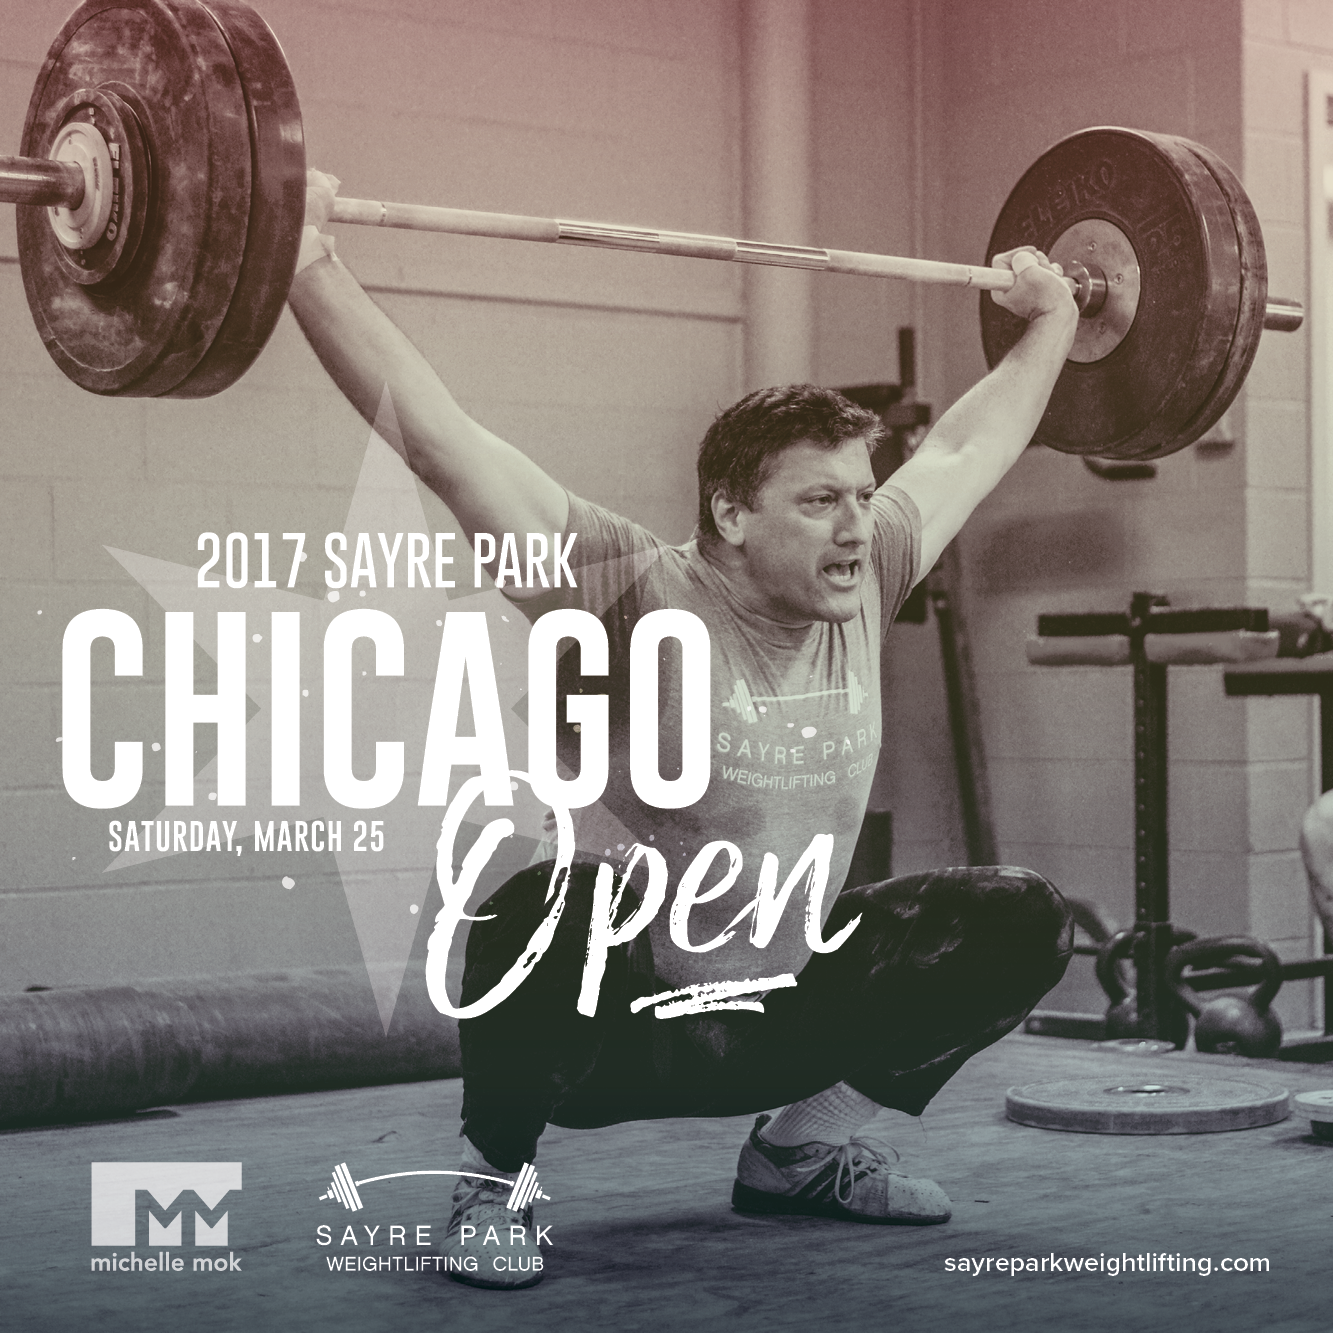 SAYRE PARK WEIGHTLIFTING CLUB